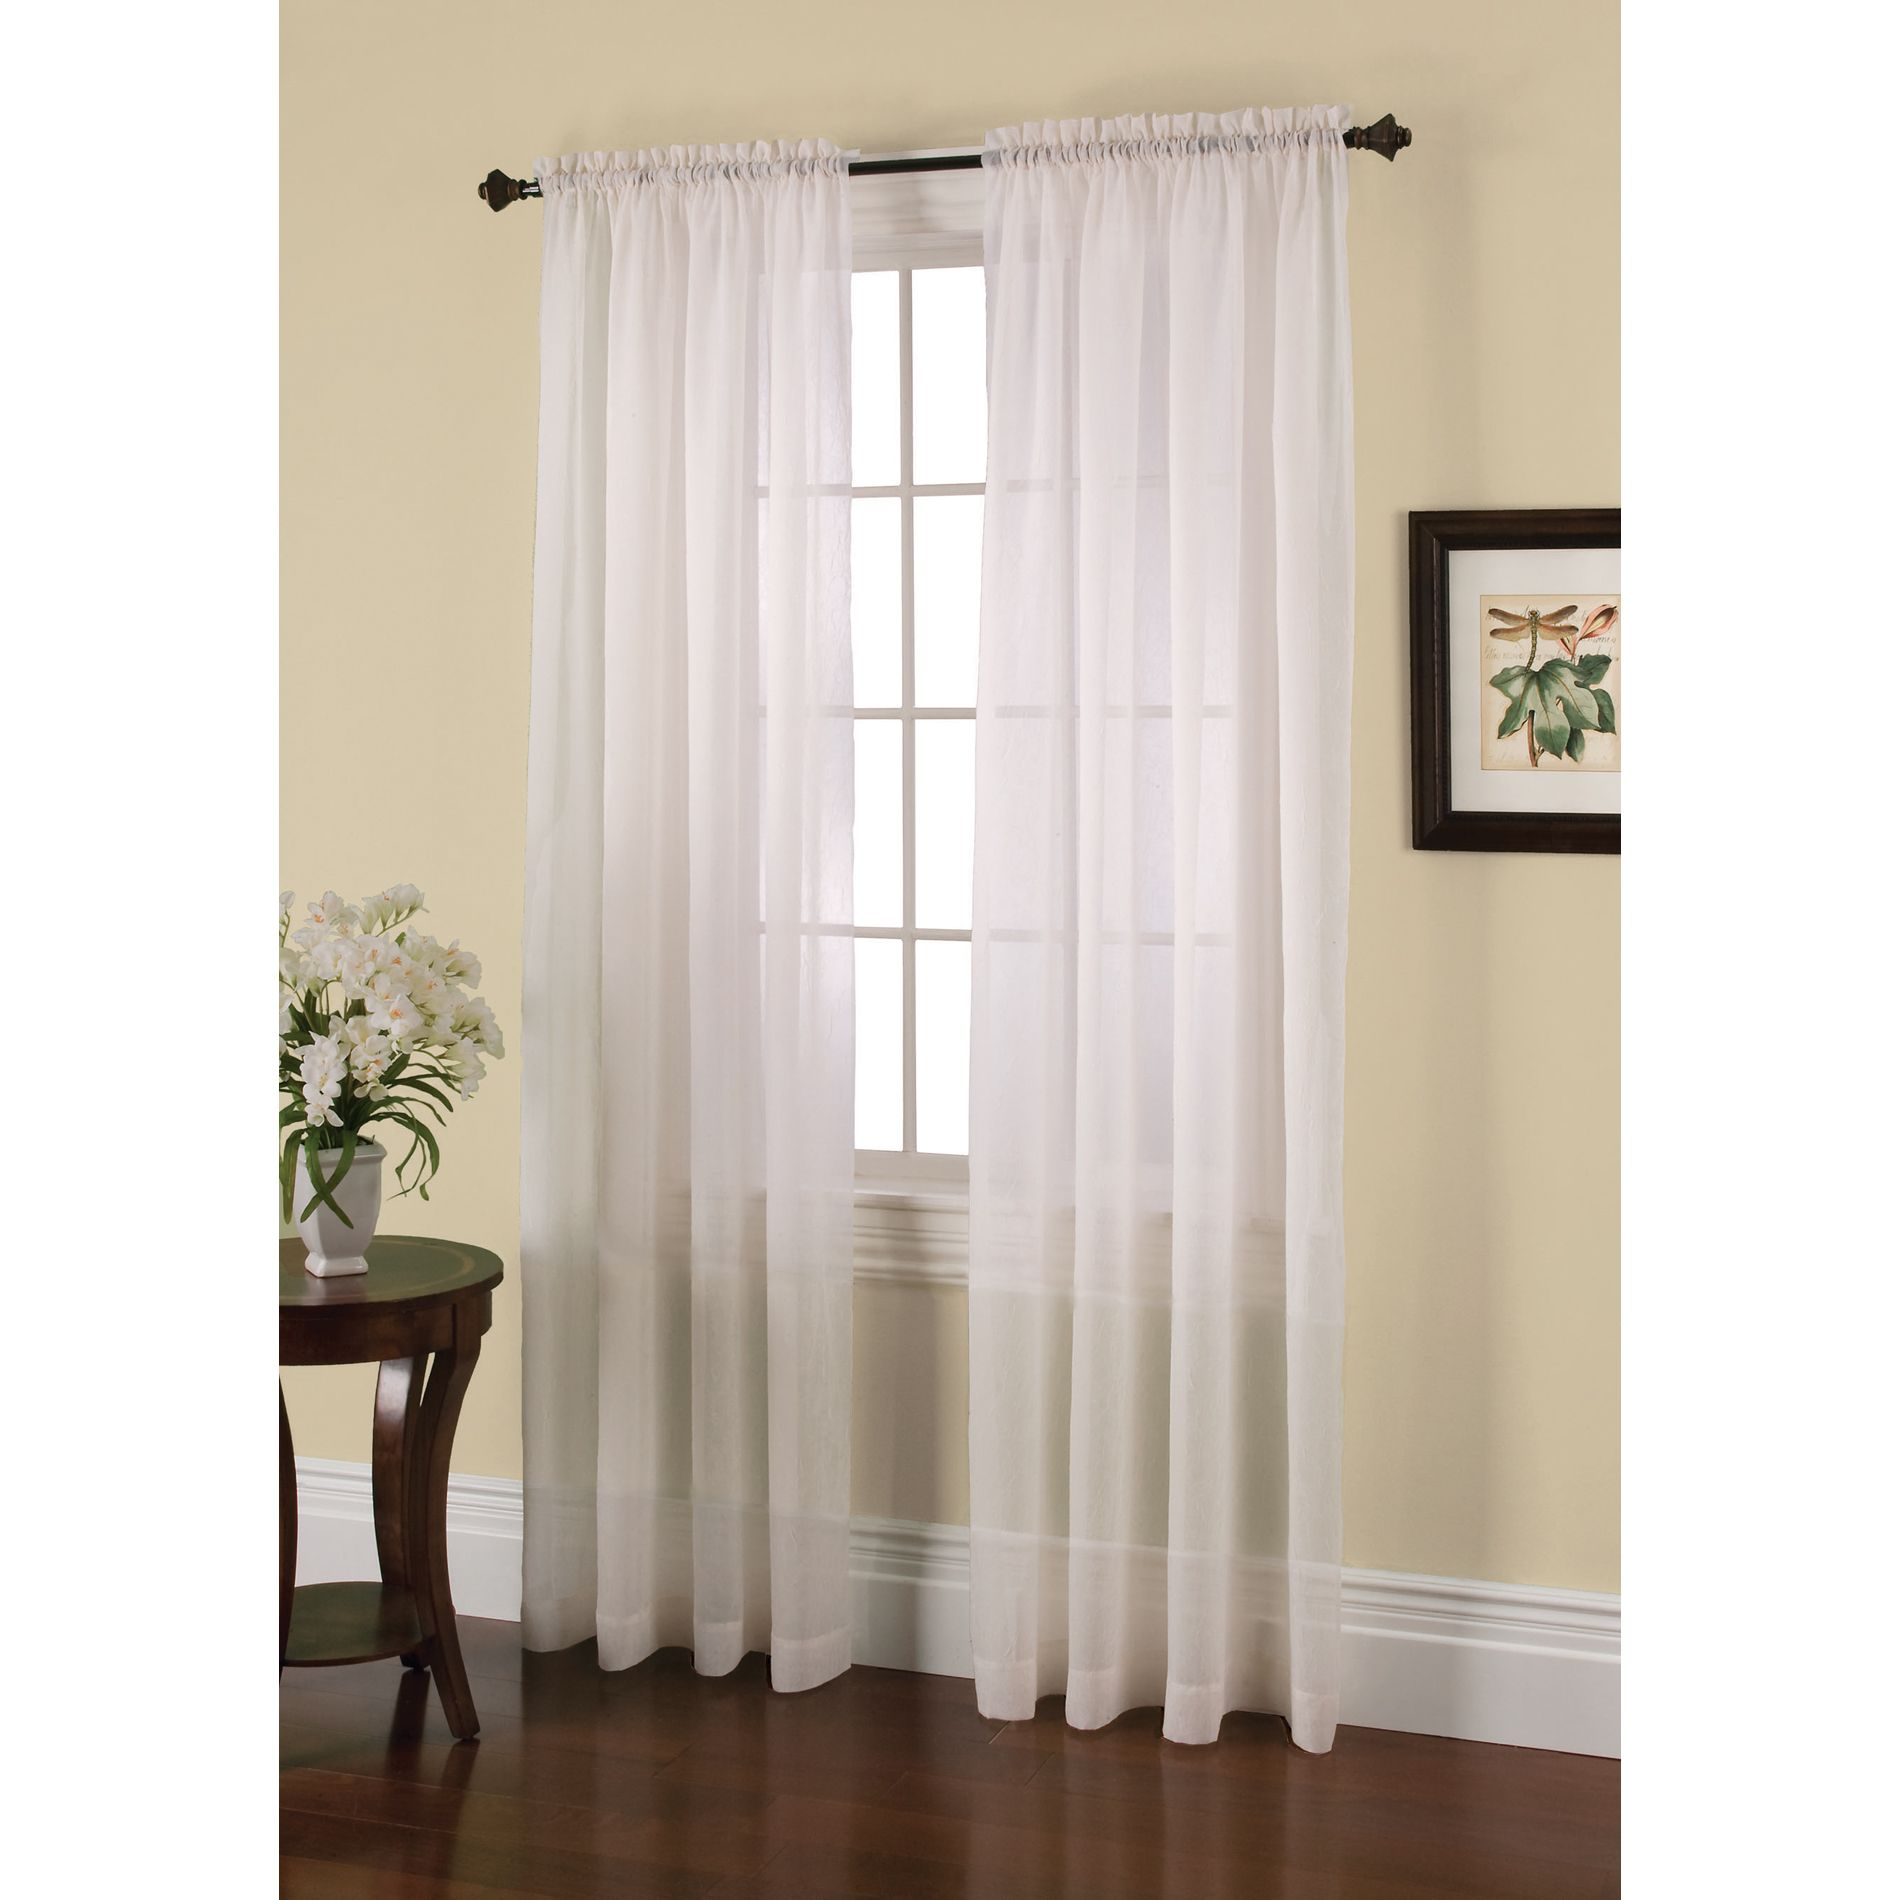 window panels jaclyn smith crushed voile curtain white: get classic at sears u0026 kmart WCYUEXH